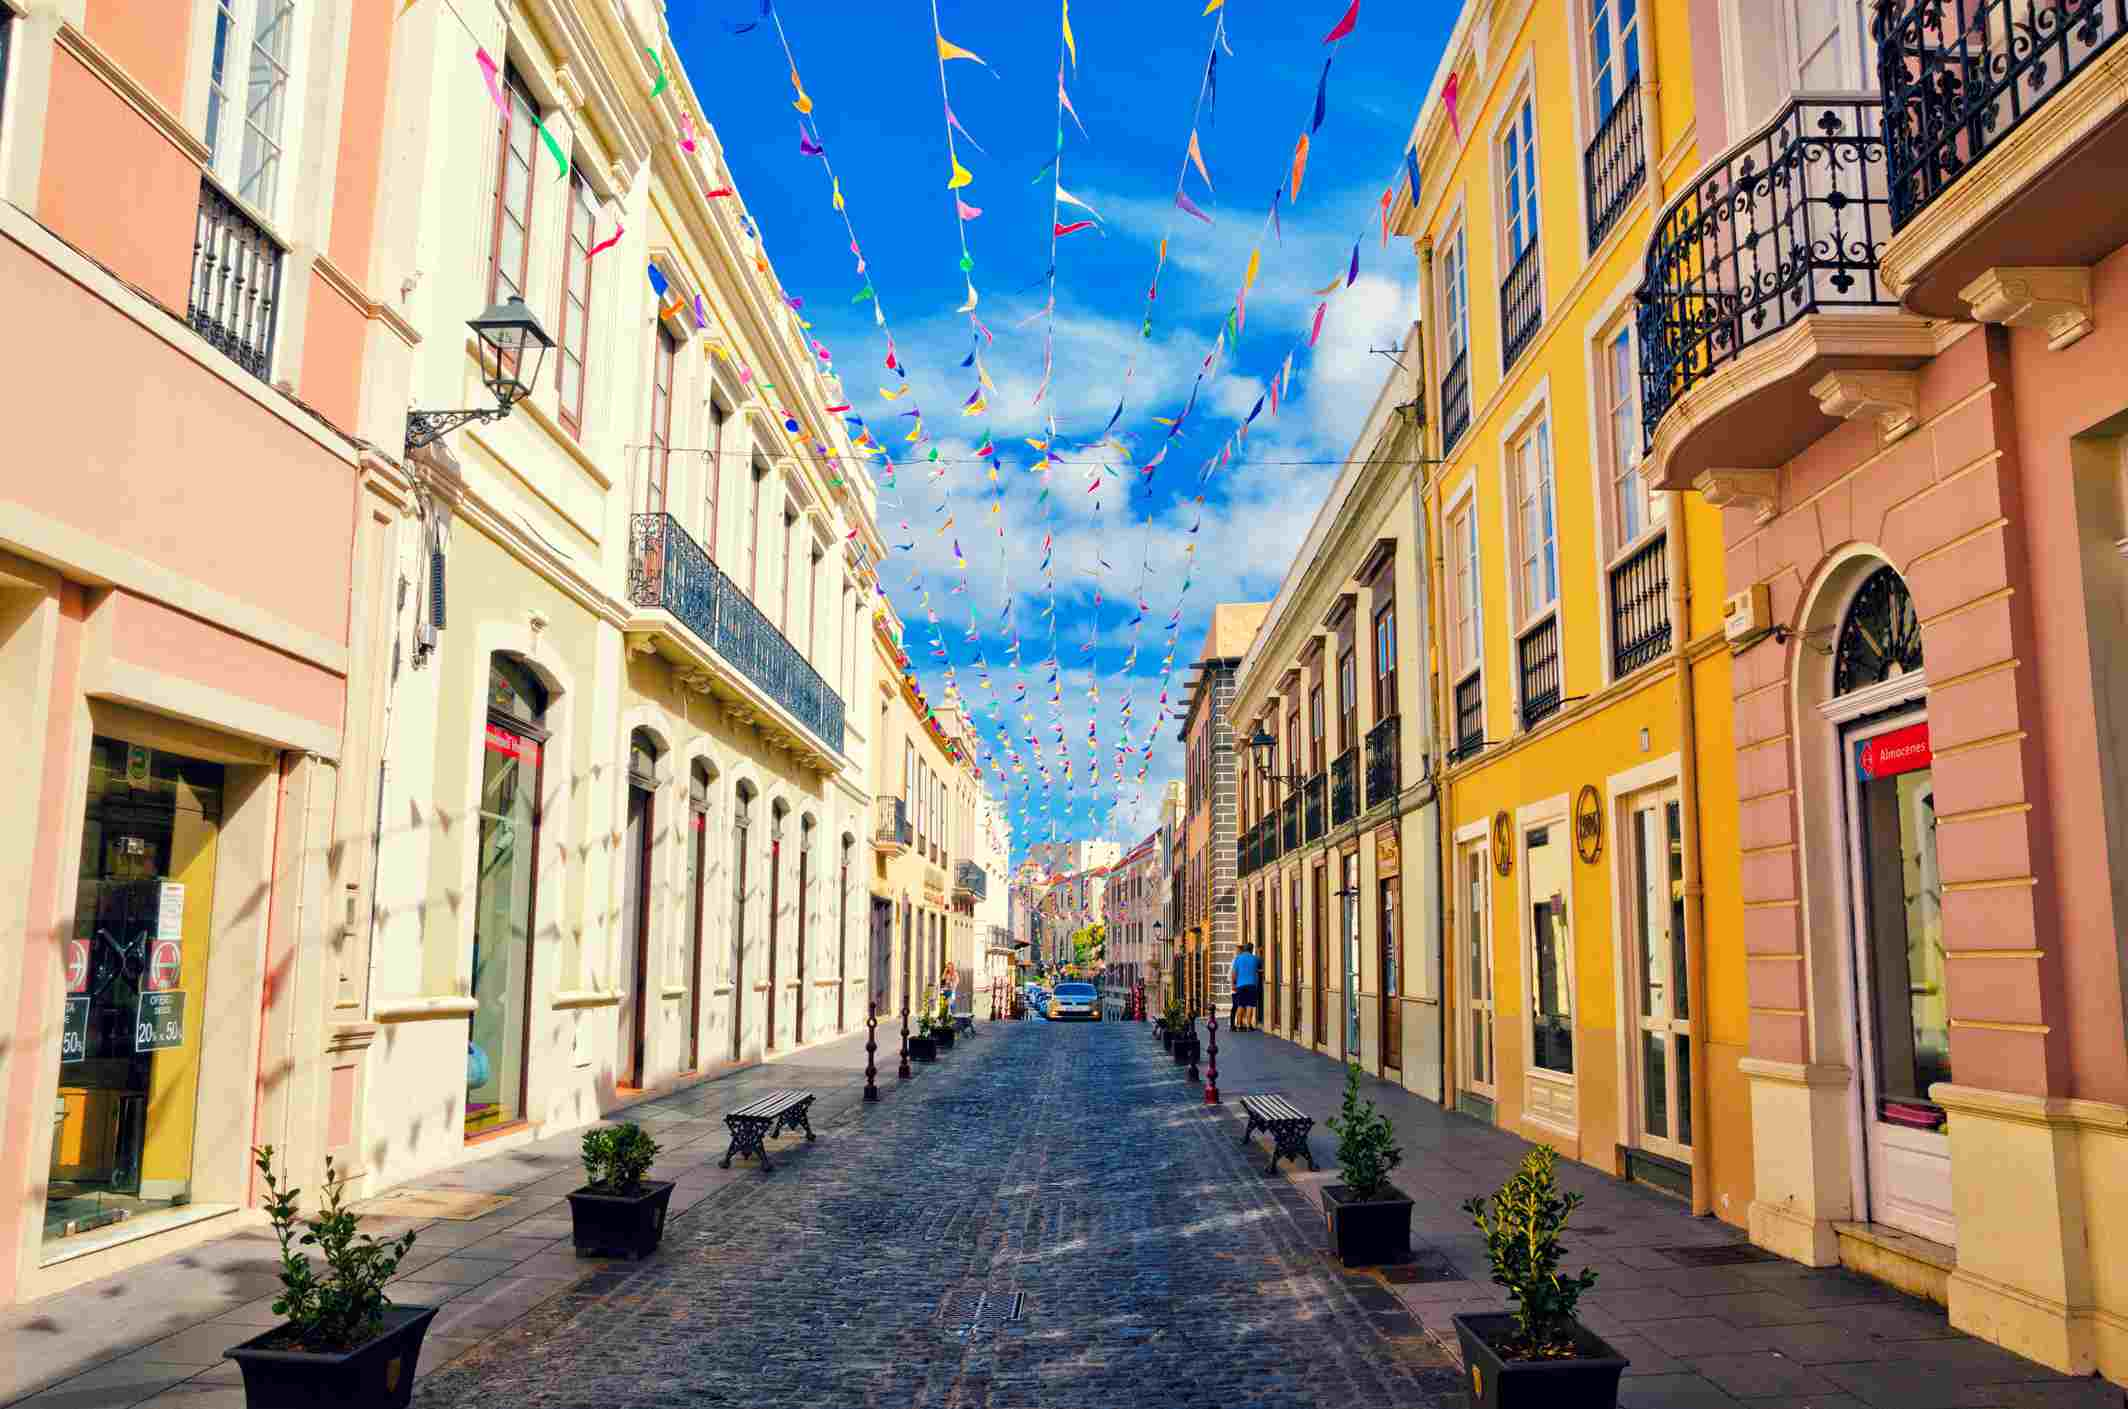 City street in La Orotava decorated with colorful flags